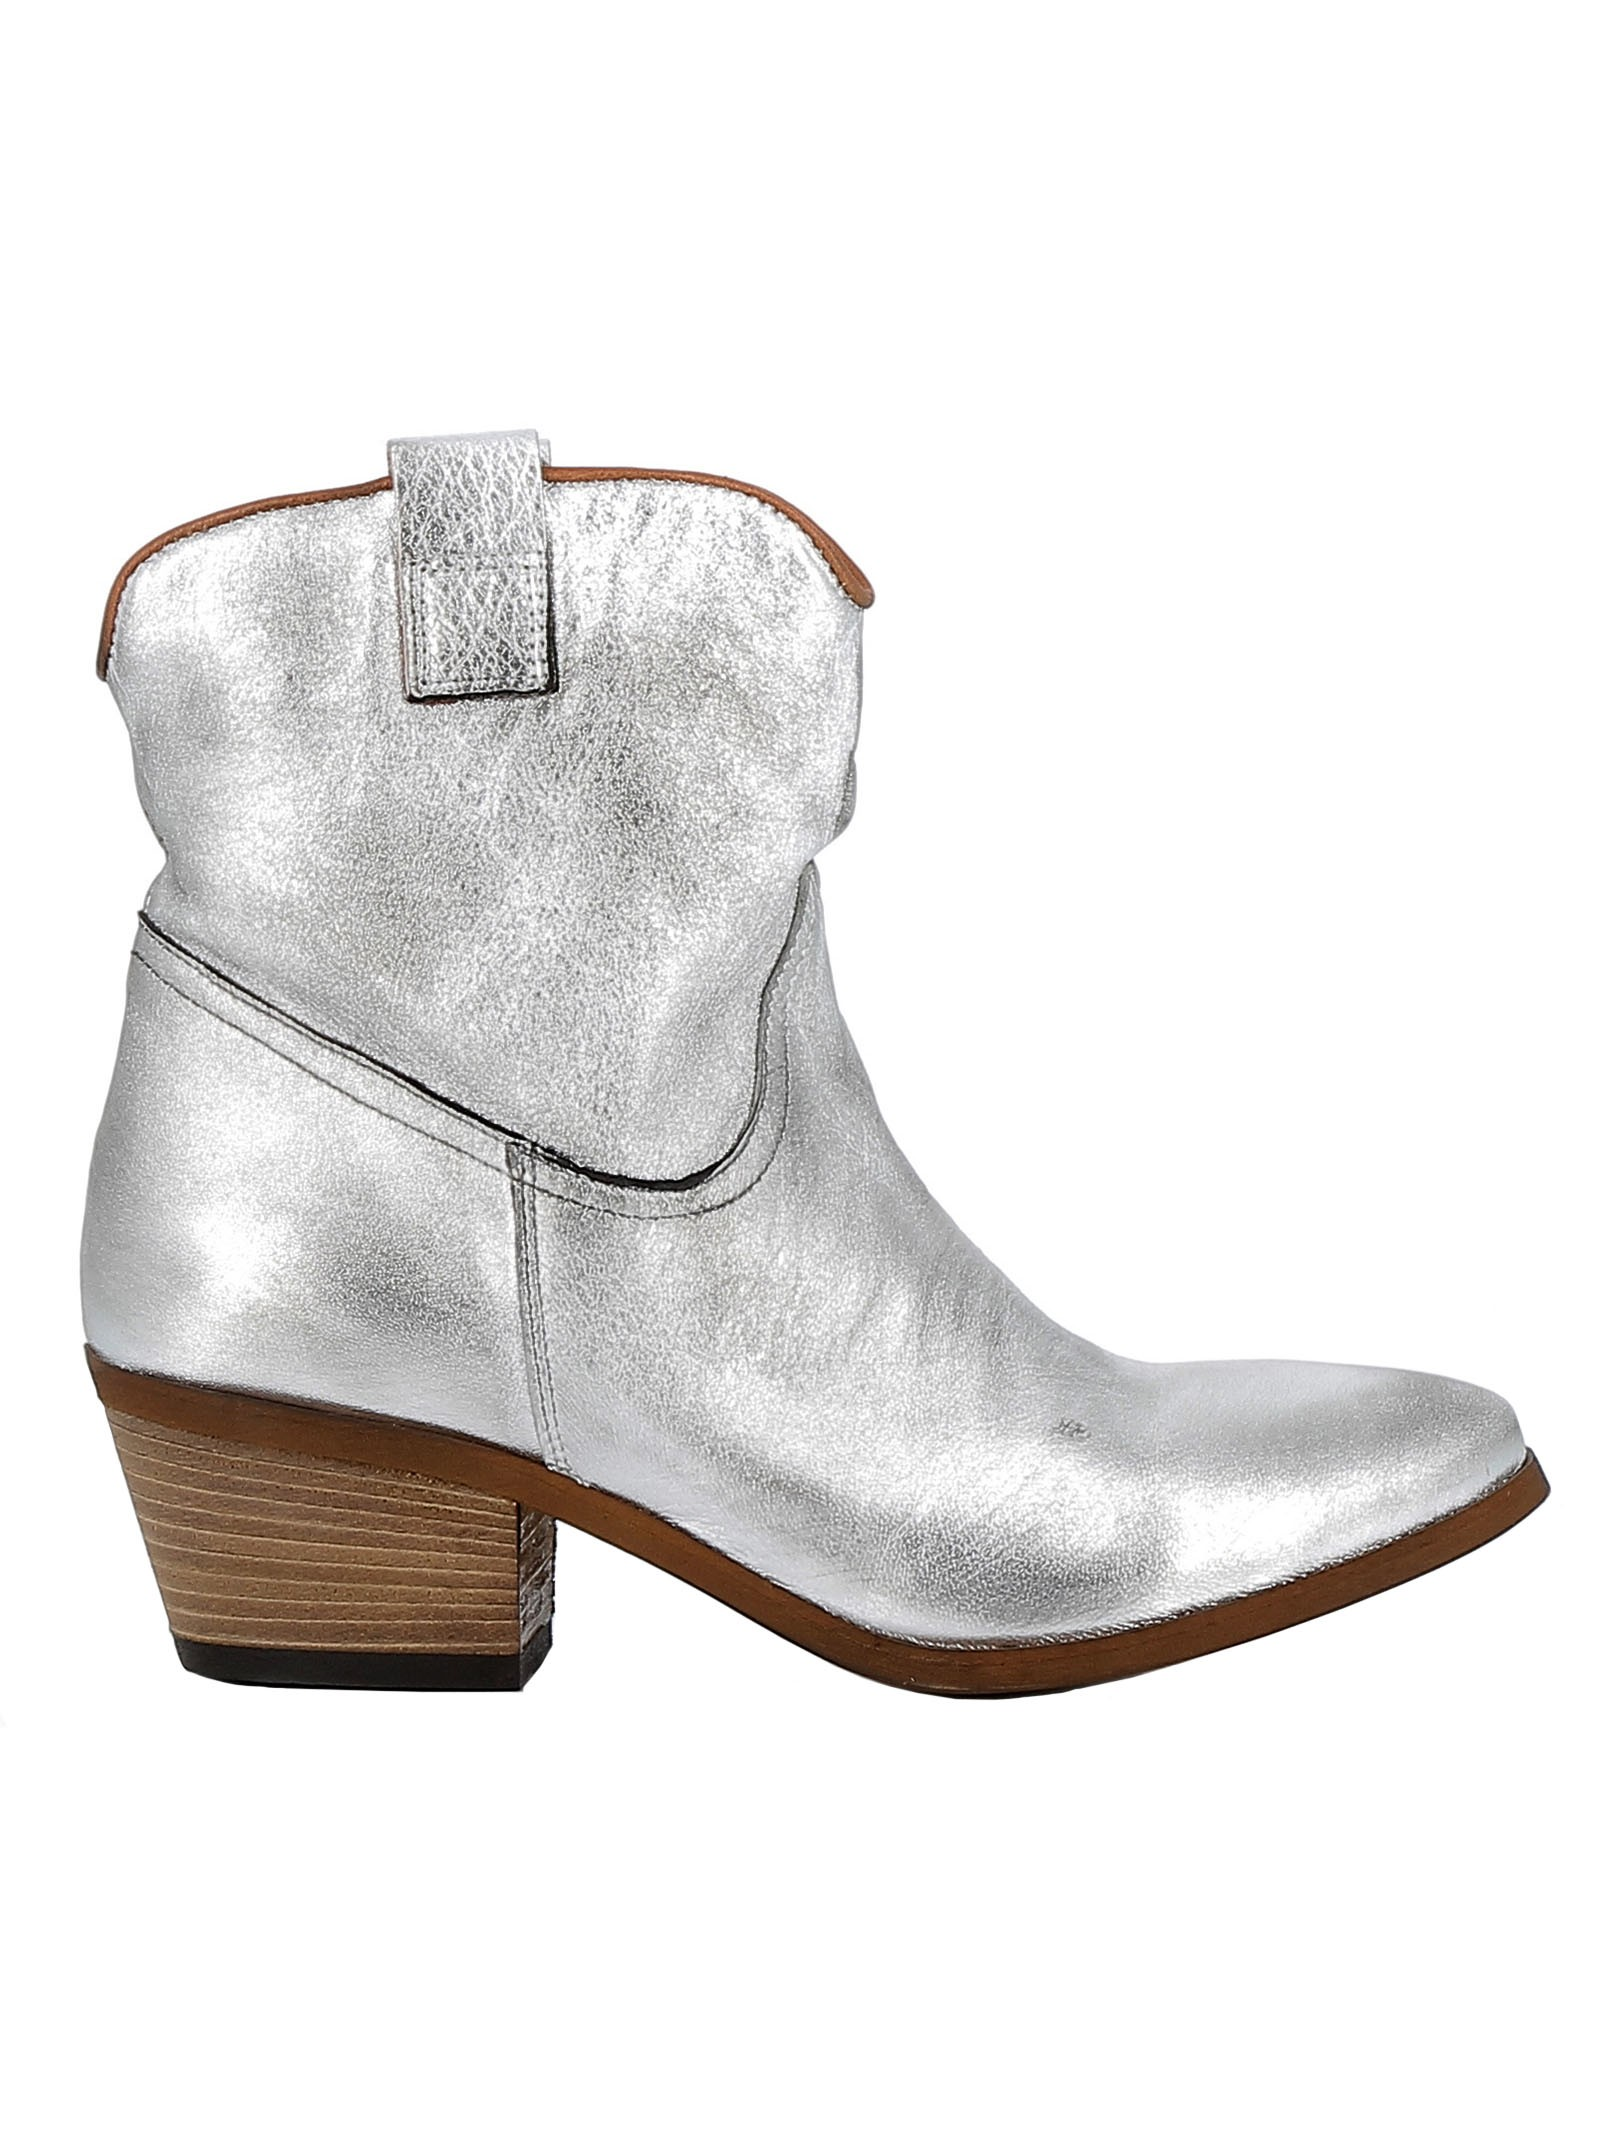 Jet'Aime Women's shoes Ankle Boots - M502AR   Silver   Spring Summer 19